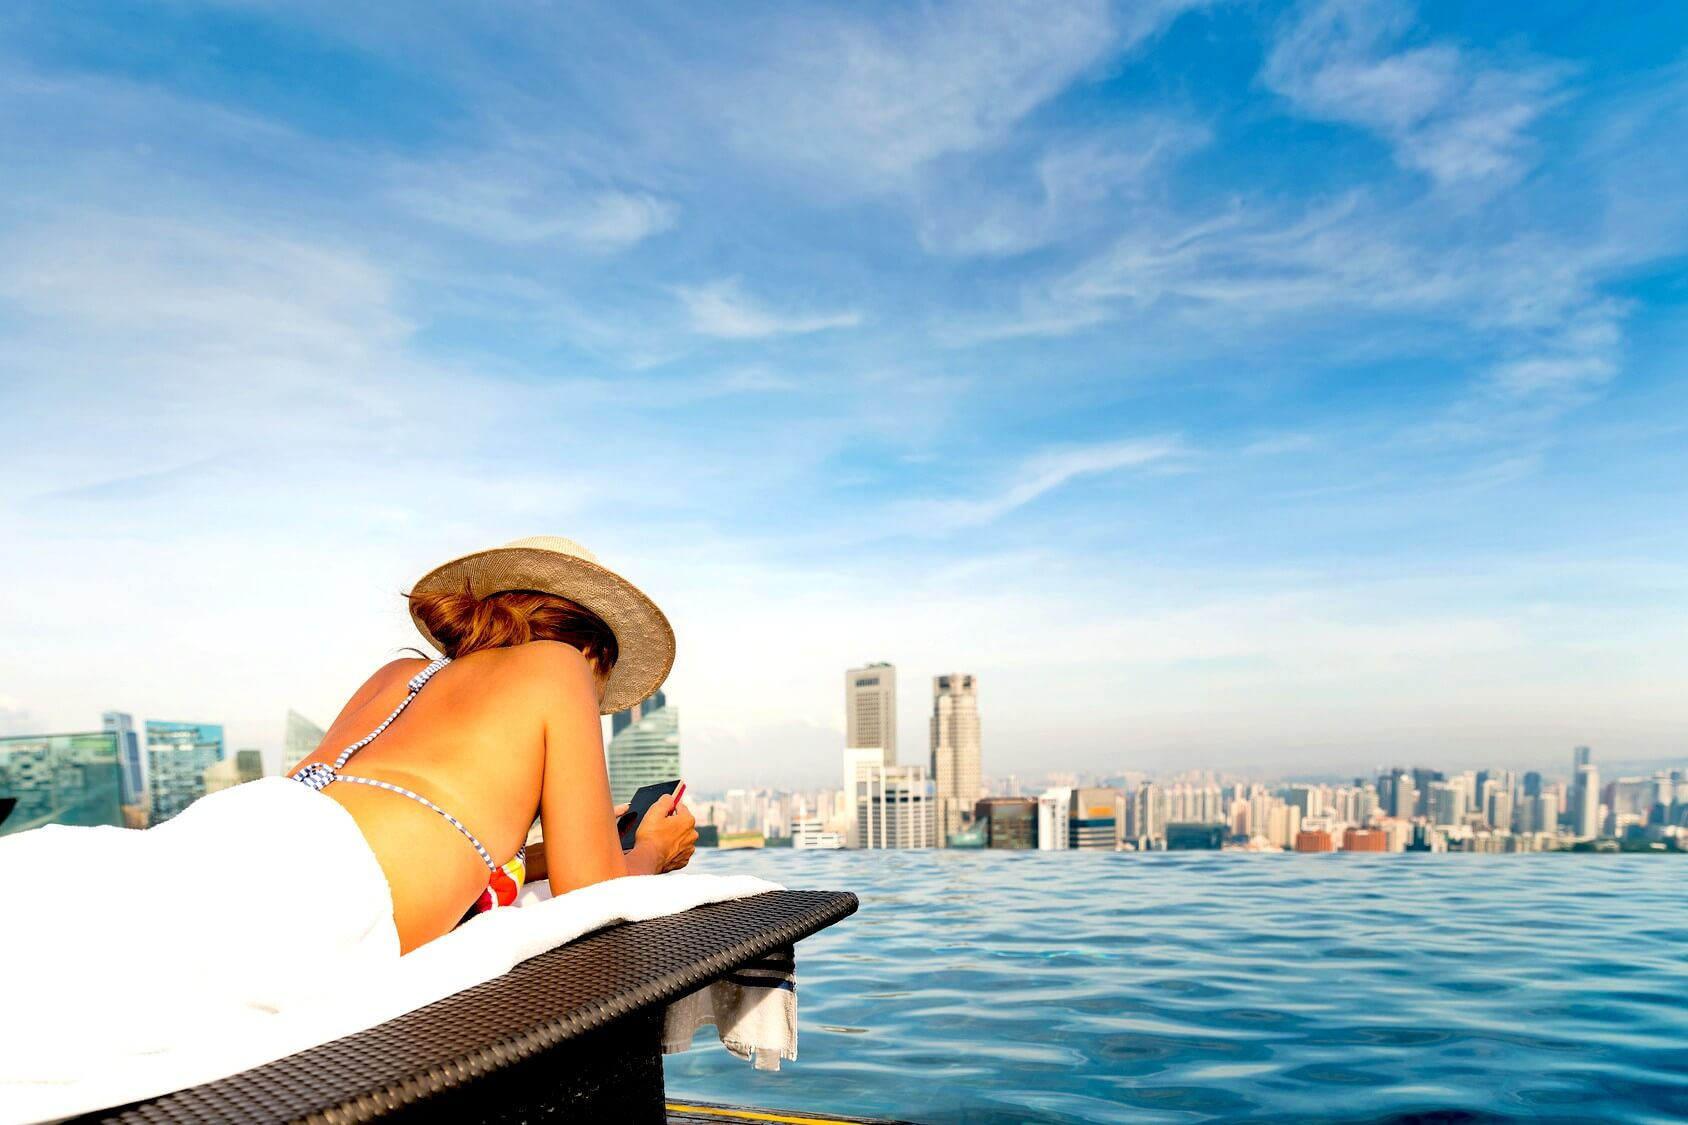 Safest Places To Travel - Rooftop Pool In Singapore - AssistAnt Luxury Travel